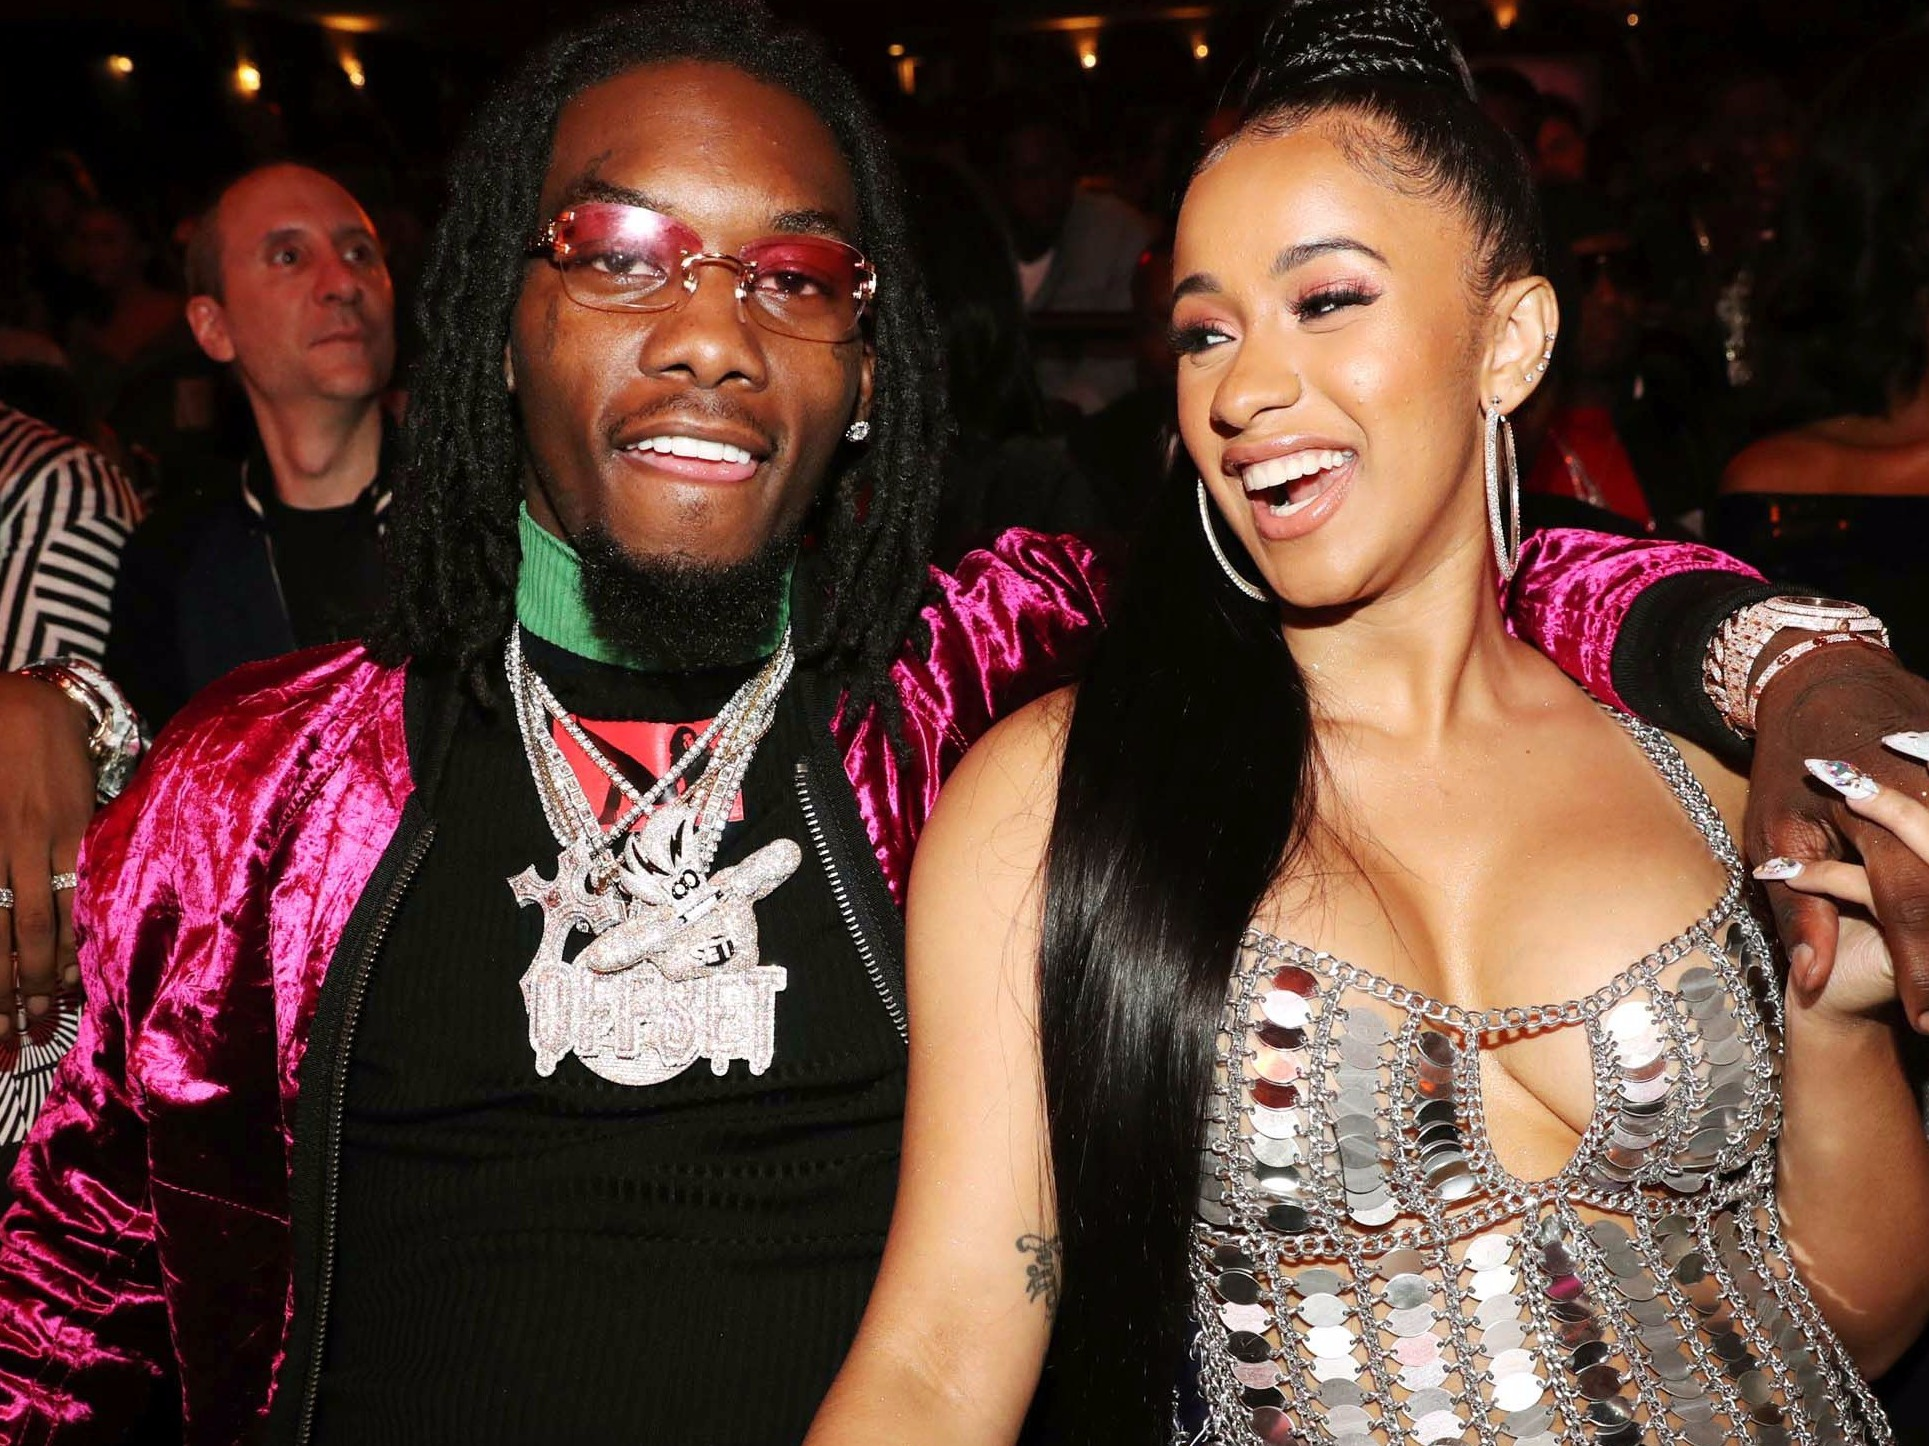 Offset Cardi B Um Yeah Instrumental: Cardi B And Offset Team Up On New Duet Track 'Um Yea